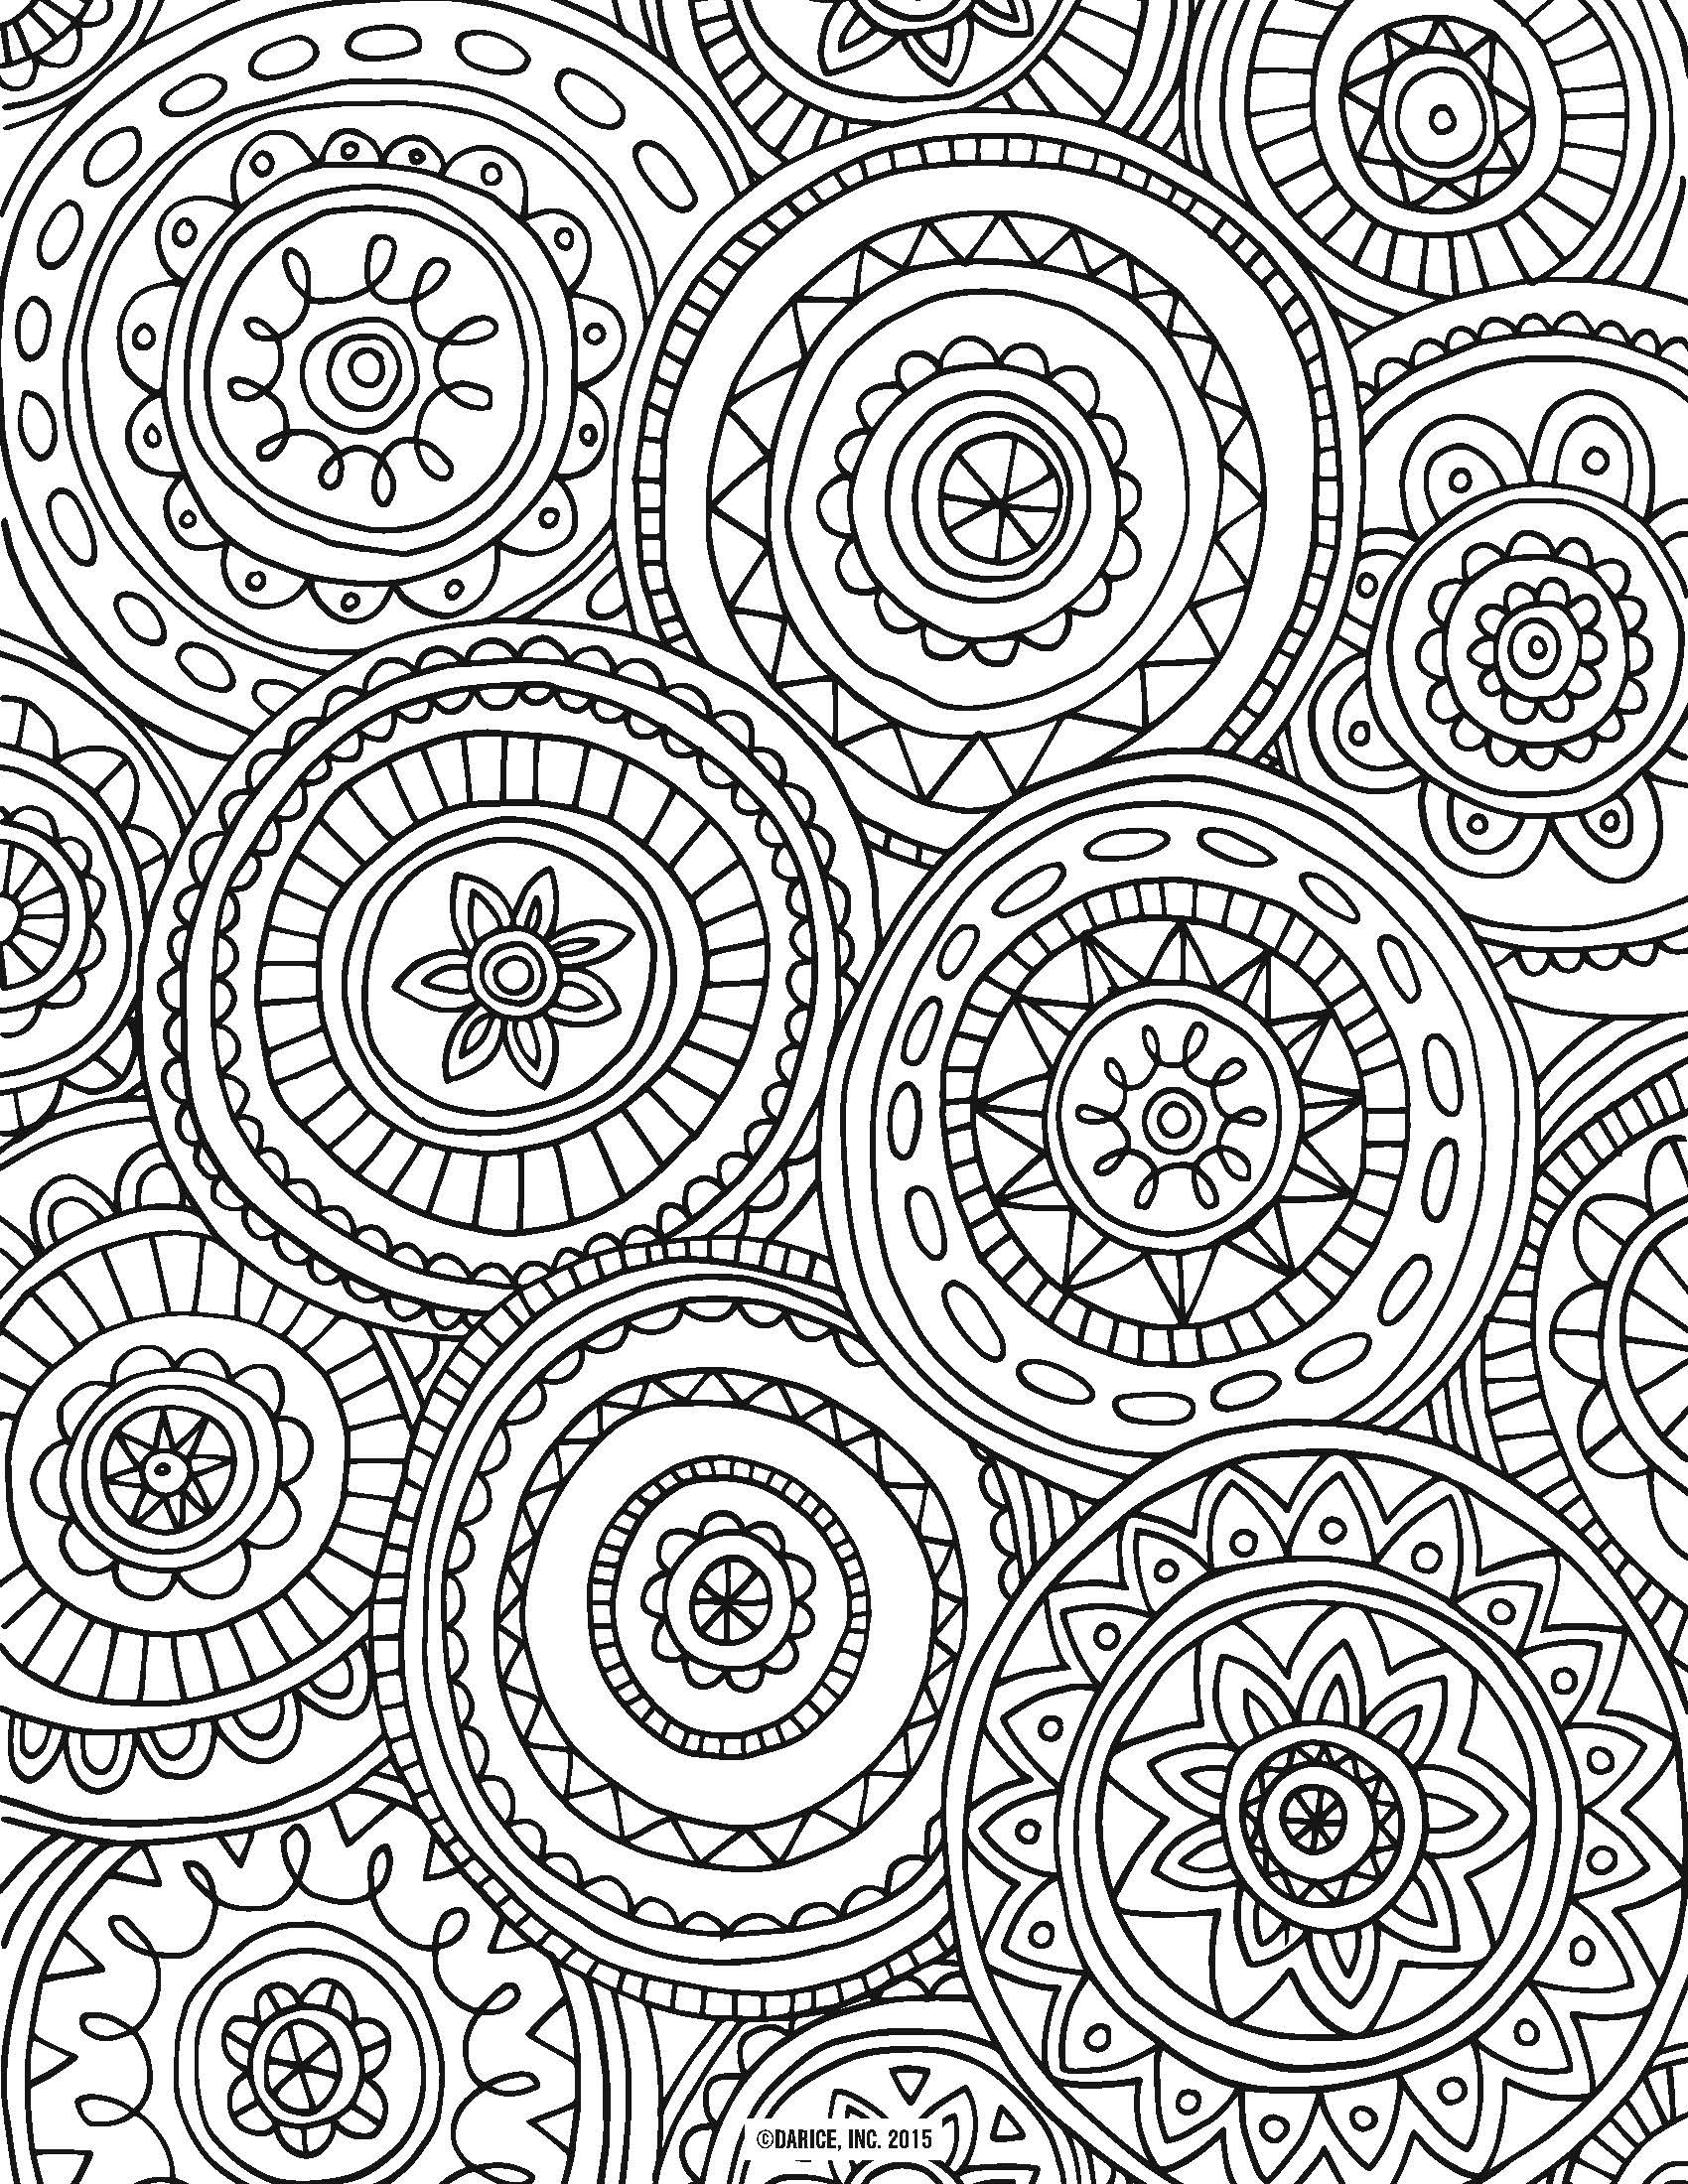 650 Beautiful Coloring Pages For Adults Download Free Images